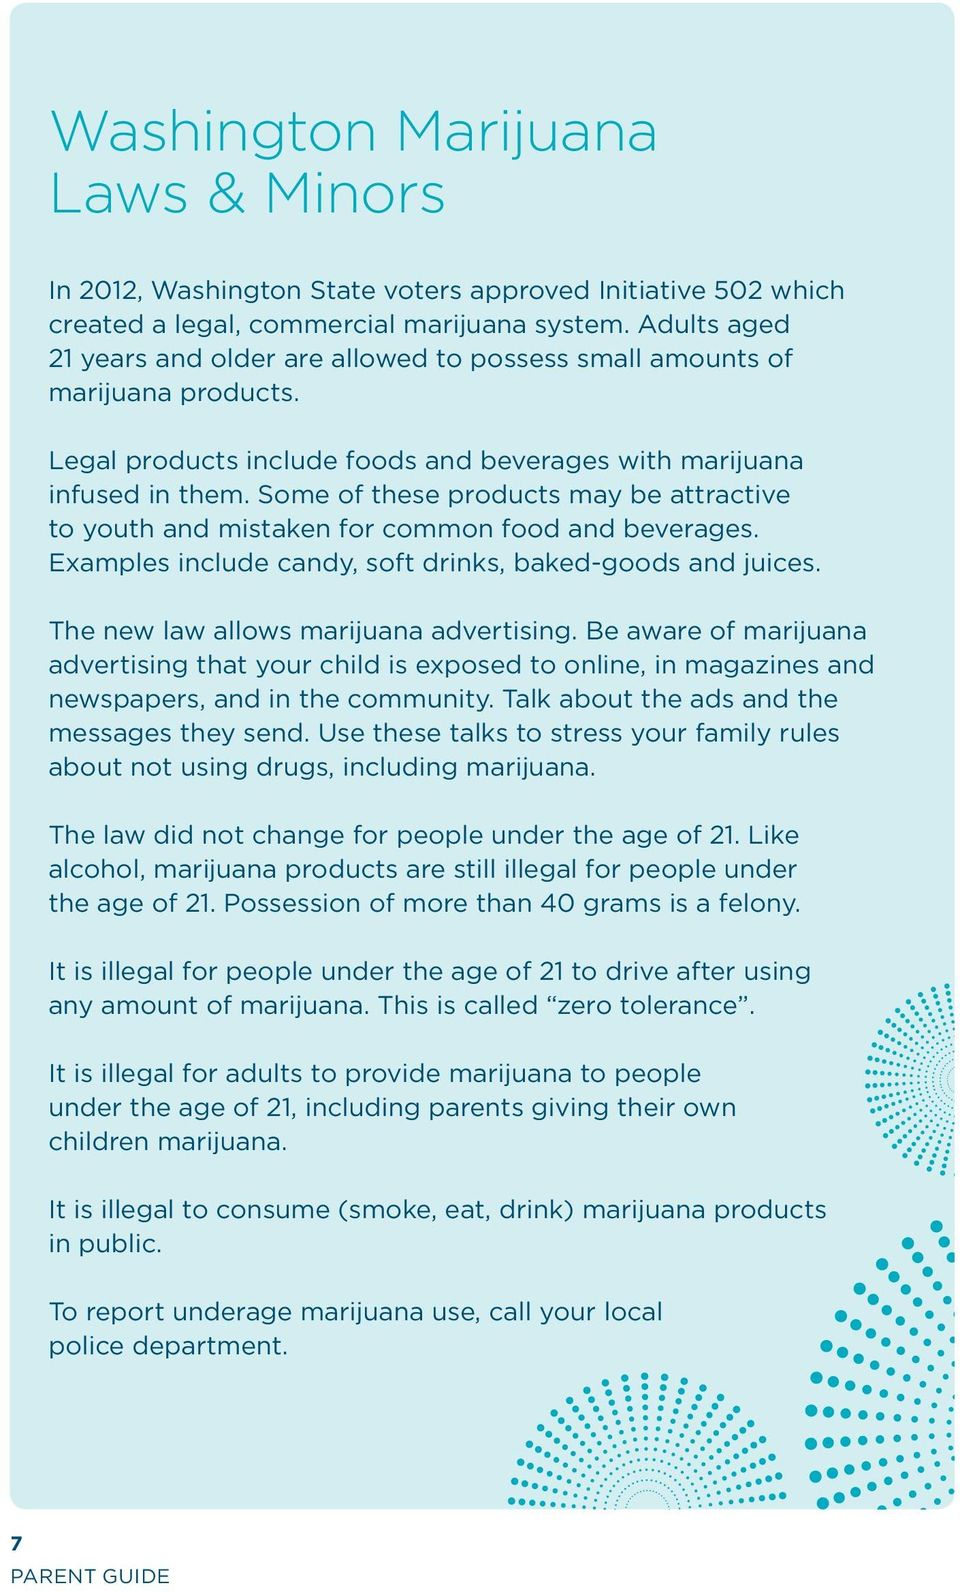 Some of these products may be attractive to youth and mistaken for common food and beverages. Examples include candy, soft drinks, baked-goods and juices. The new law allows marijuana advertising.